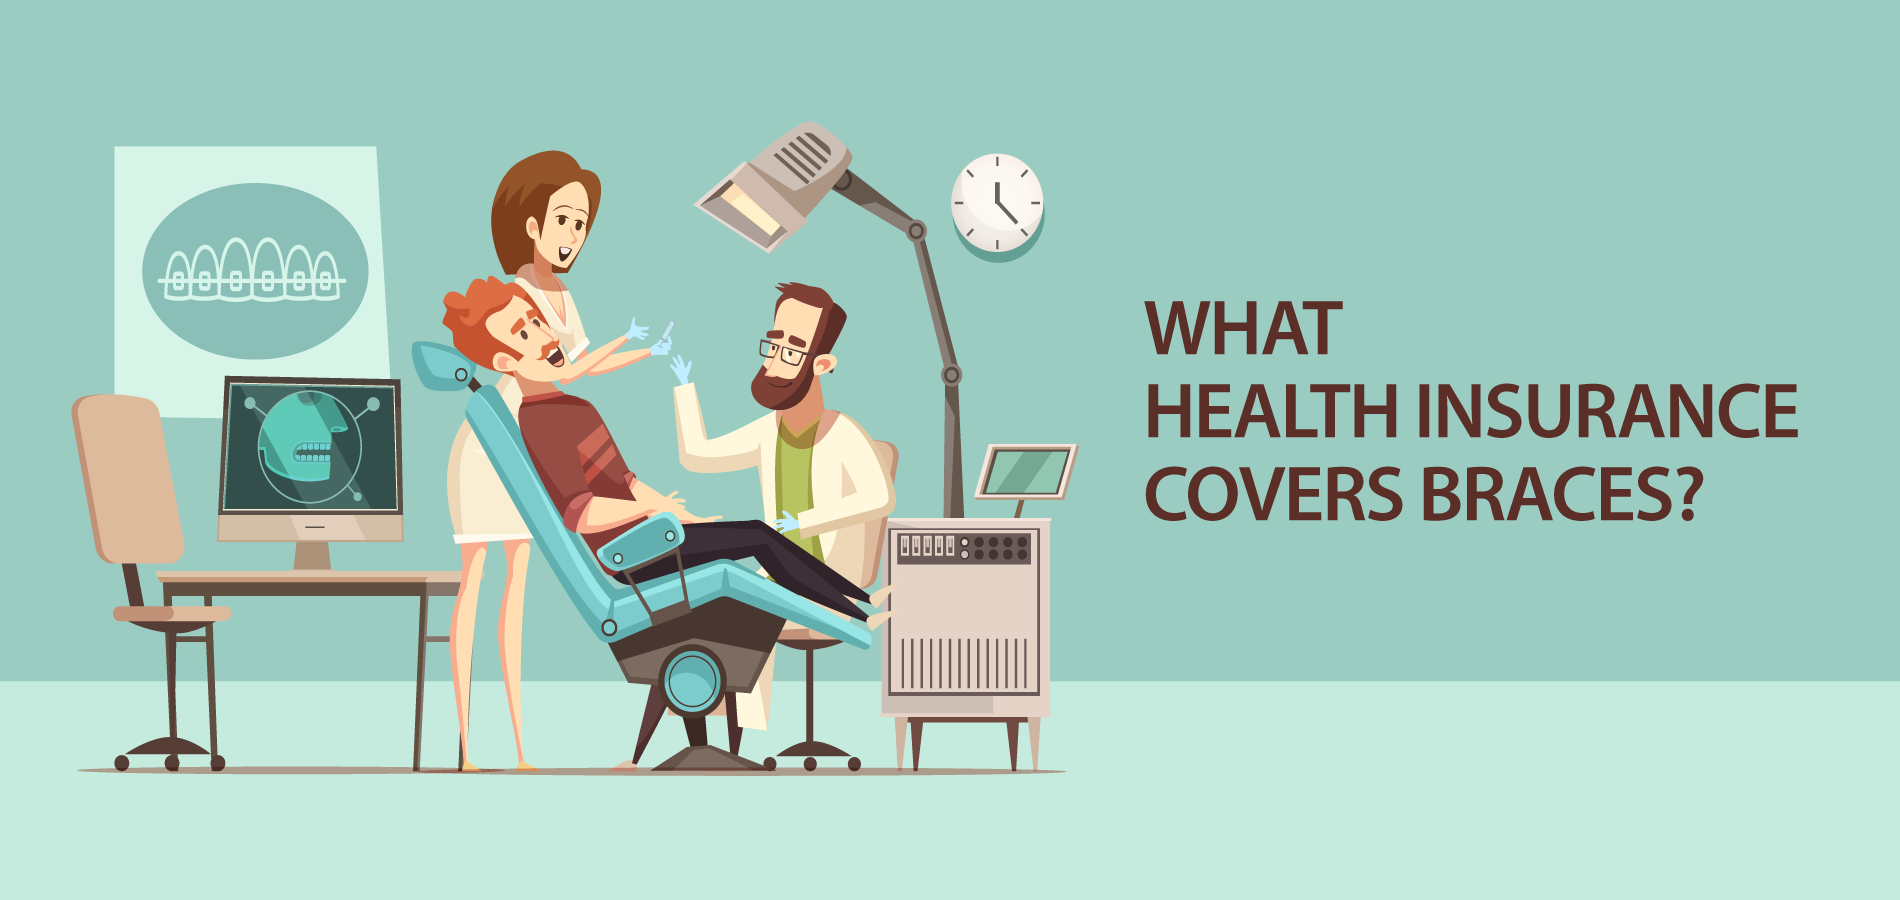 What Health Insurance Covers Braces?